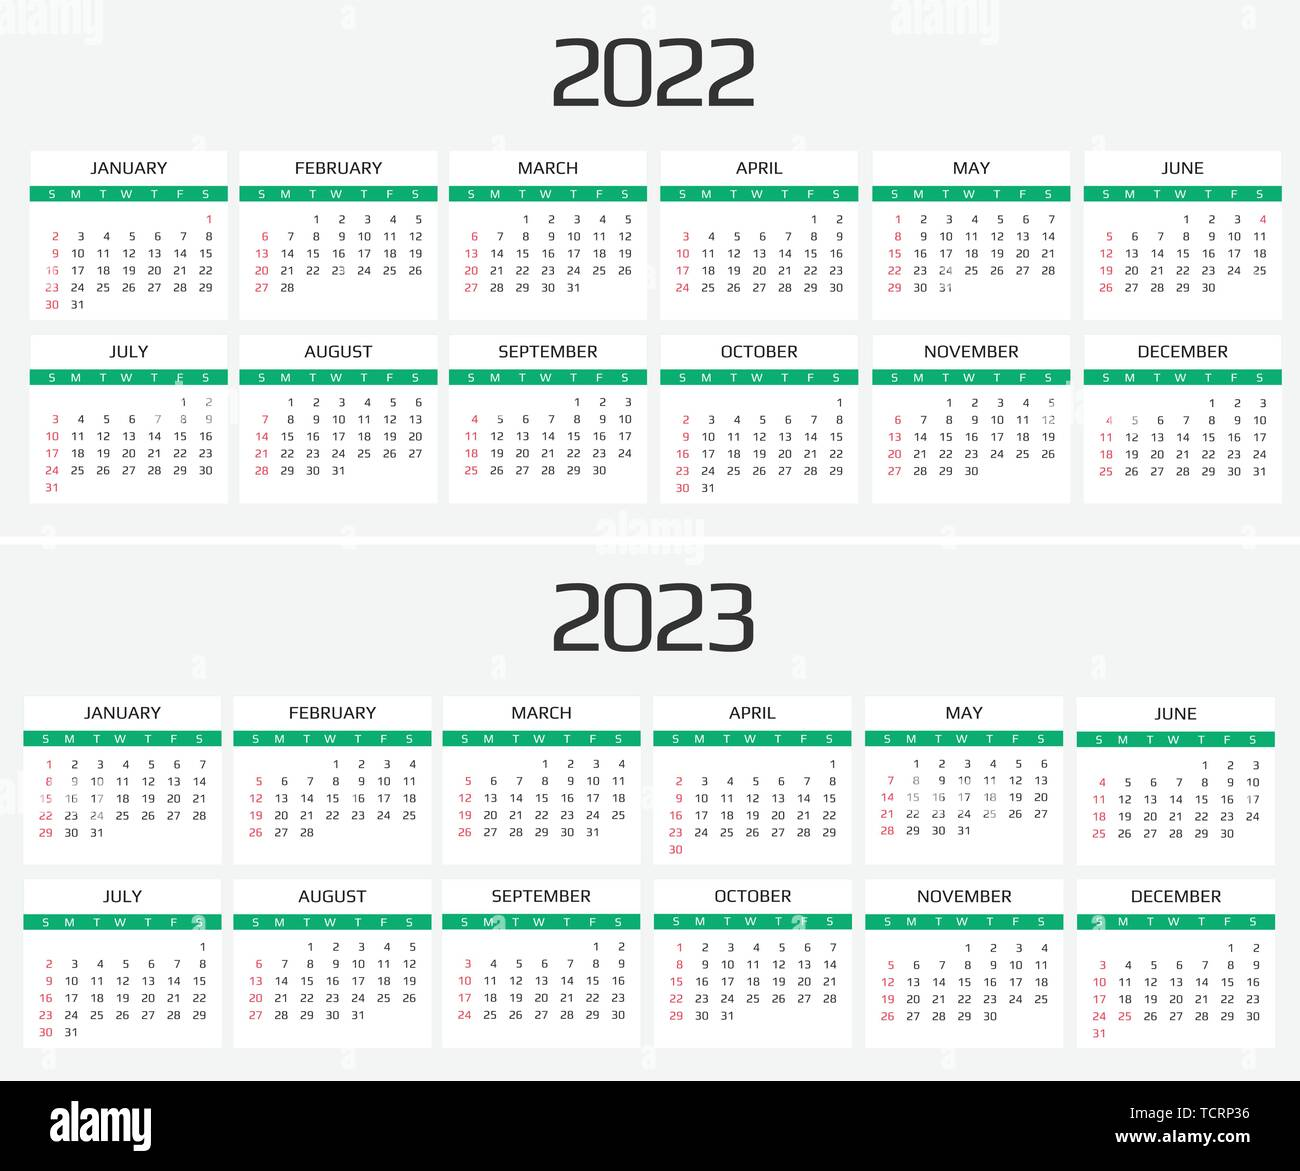 Calendrier 2022 2023 2022 Calendar 2022 and 2023 template. 12 Months. include holiday event